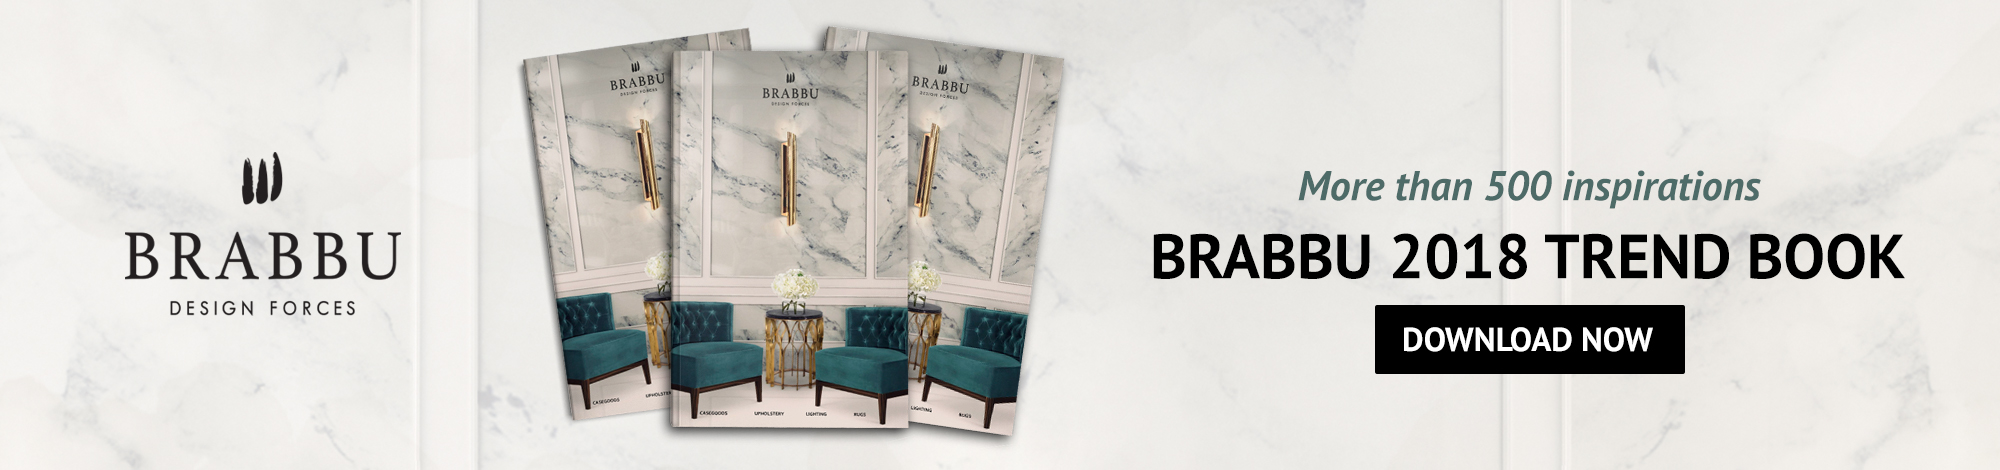 BRABBU Catalogue icff 2019A Guide to Experience NYC During ICFF 2019 1C5EB82328DCFD5BD10428DB124BD945082C079483CACCDD2D pimgpsh fullsize distr